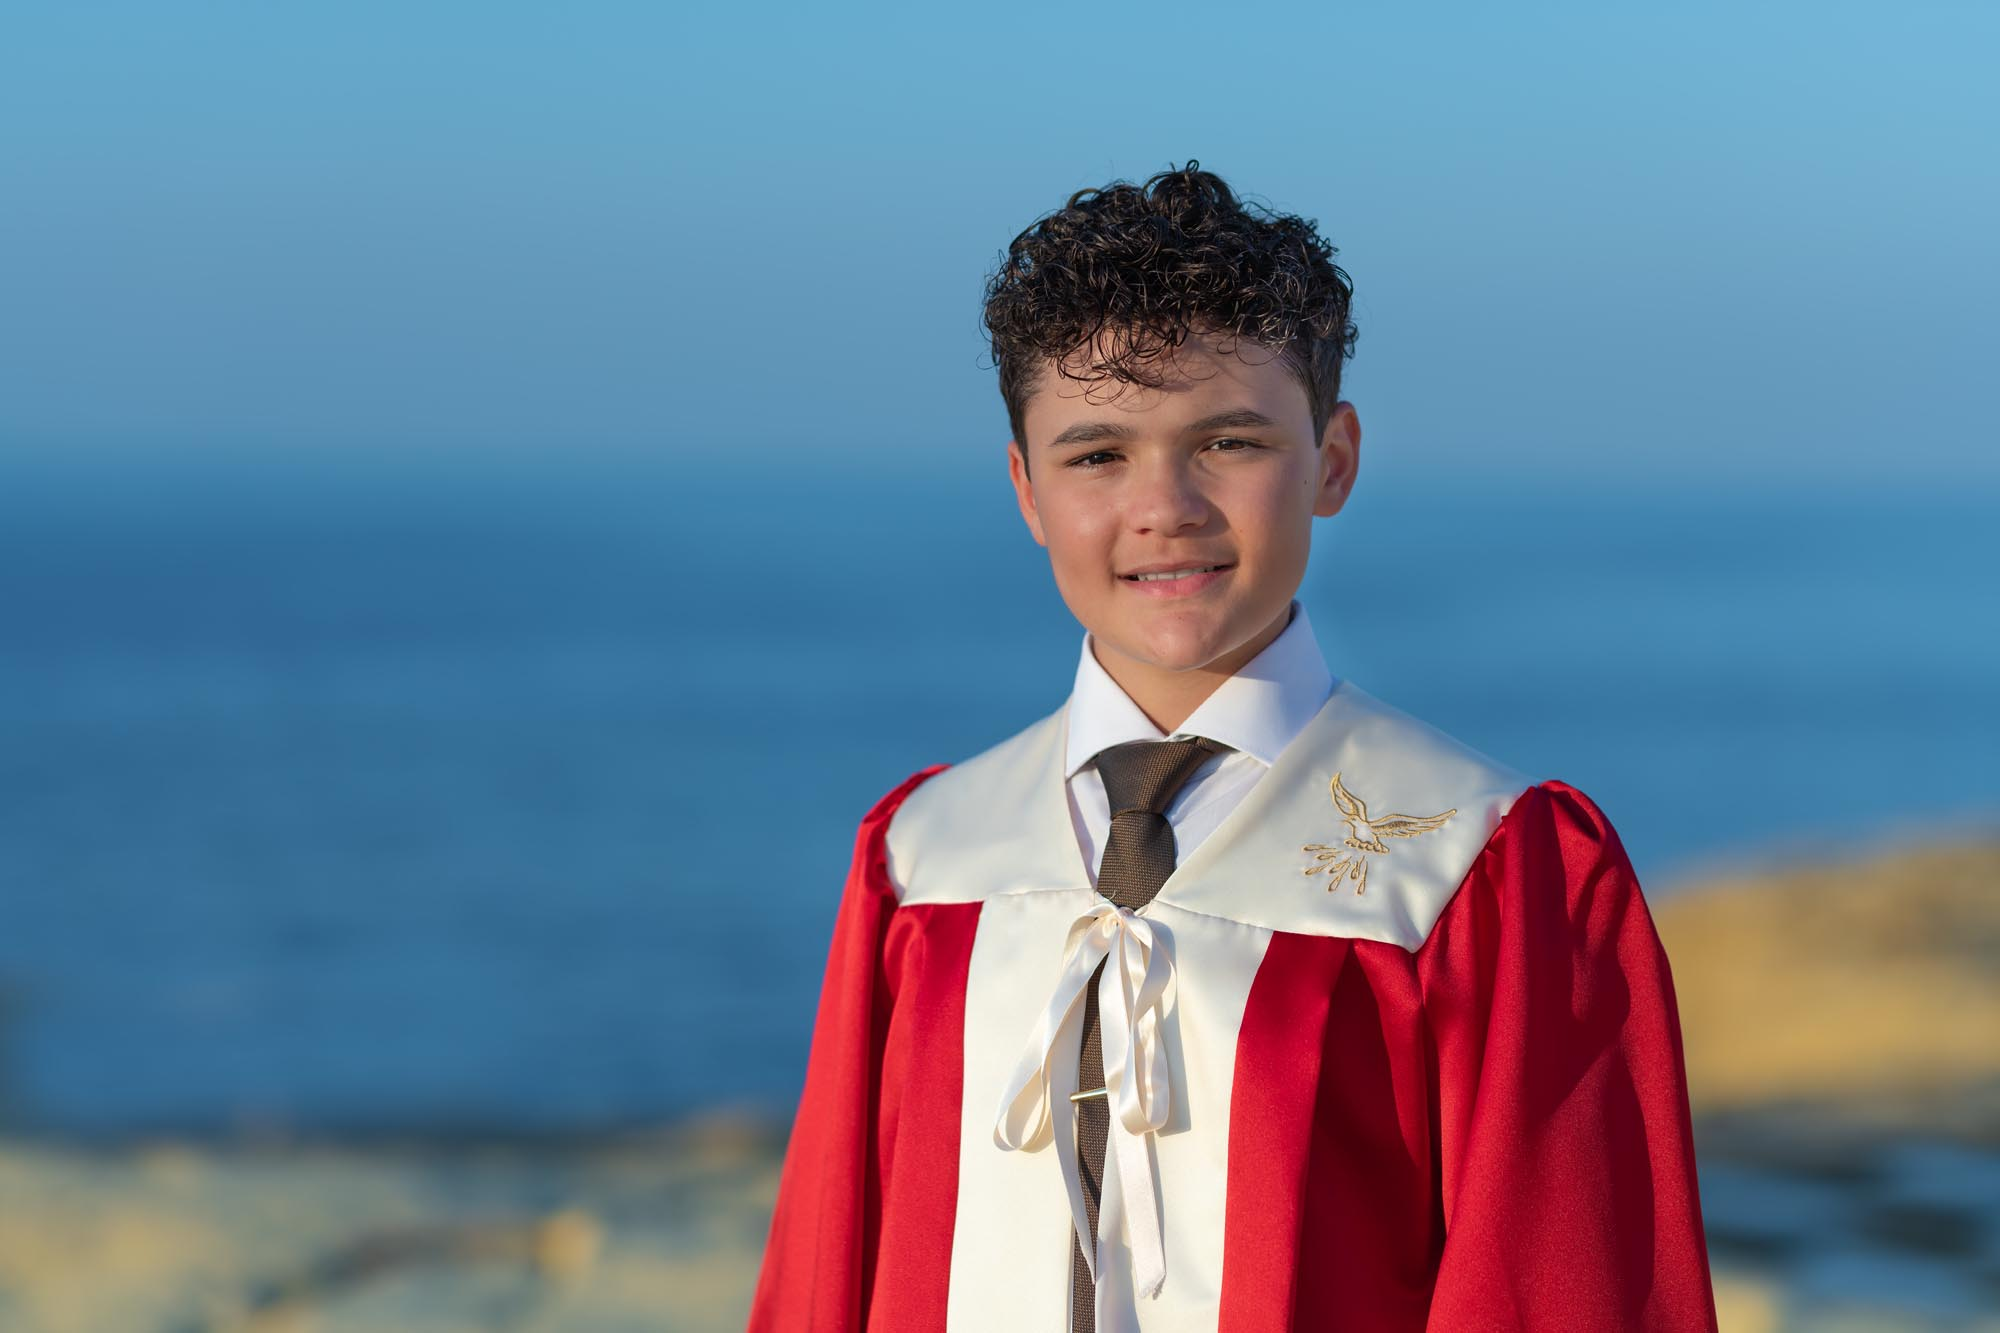 Boy smiling wearing confirmation jacket in Gozo. Photographed by Anaca